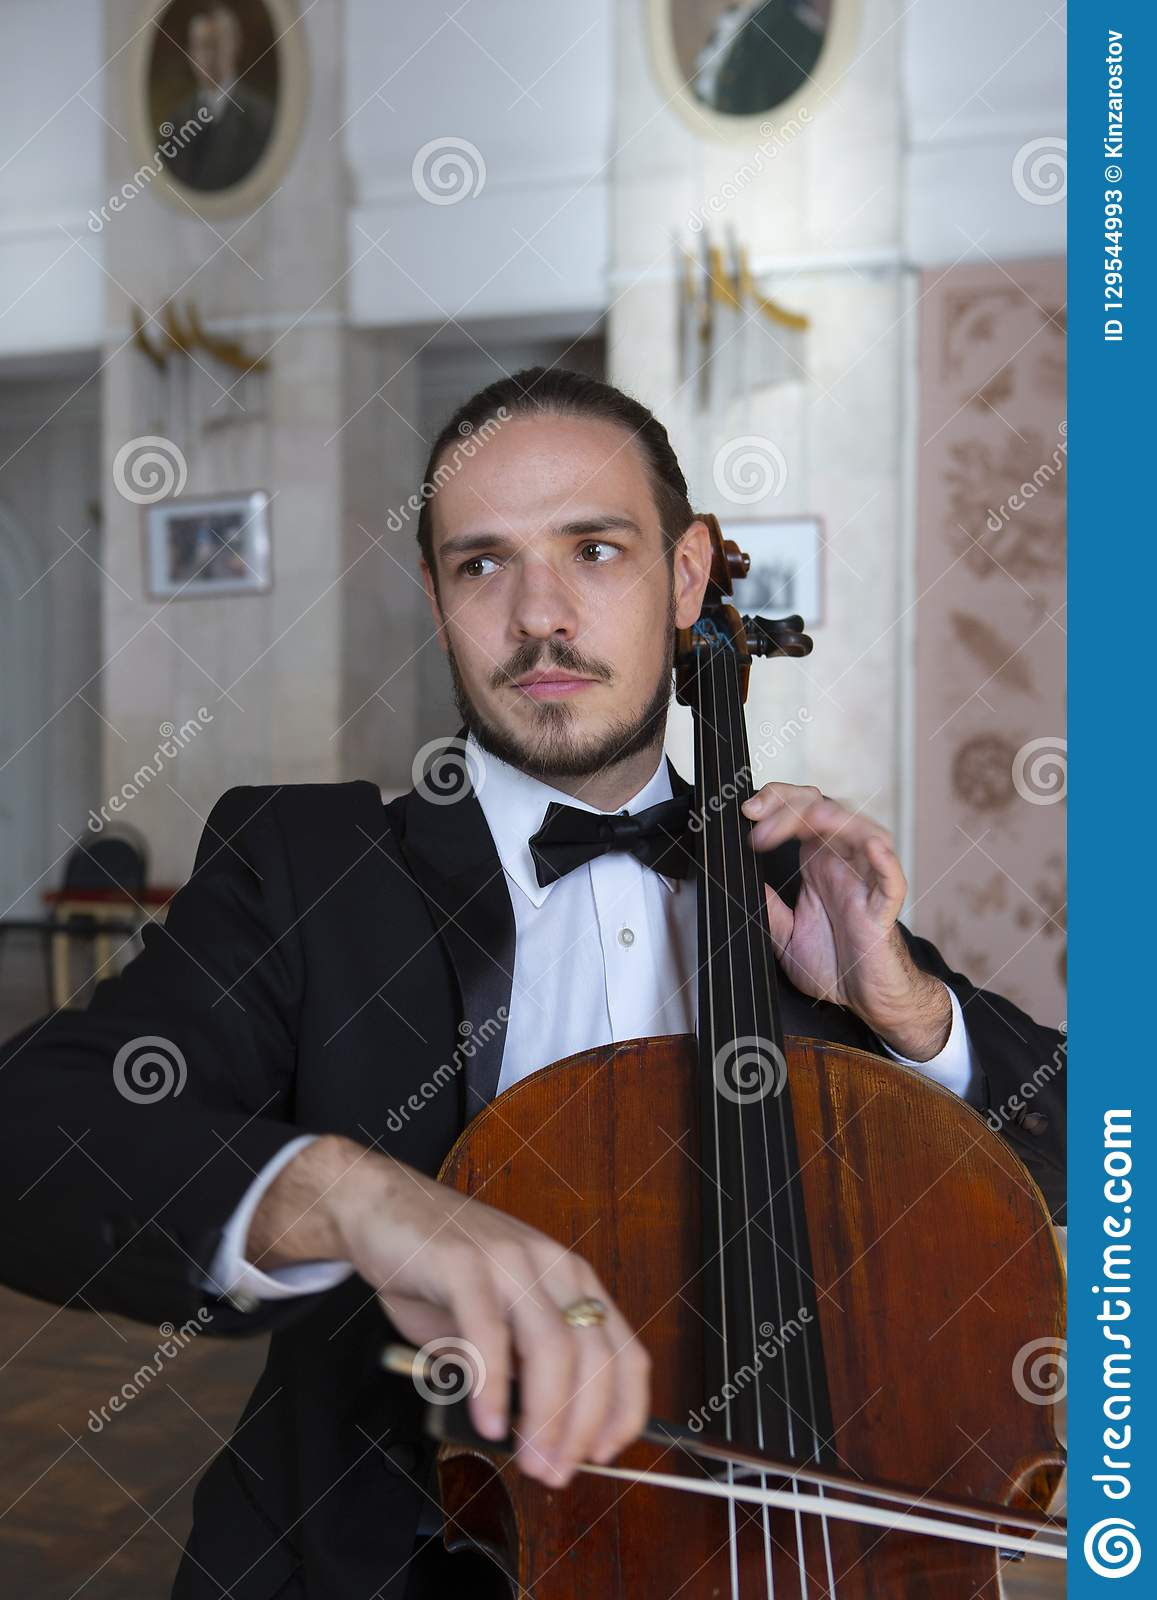 Young man playing the cello. Portrait of the cellist